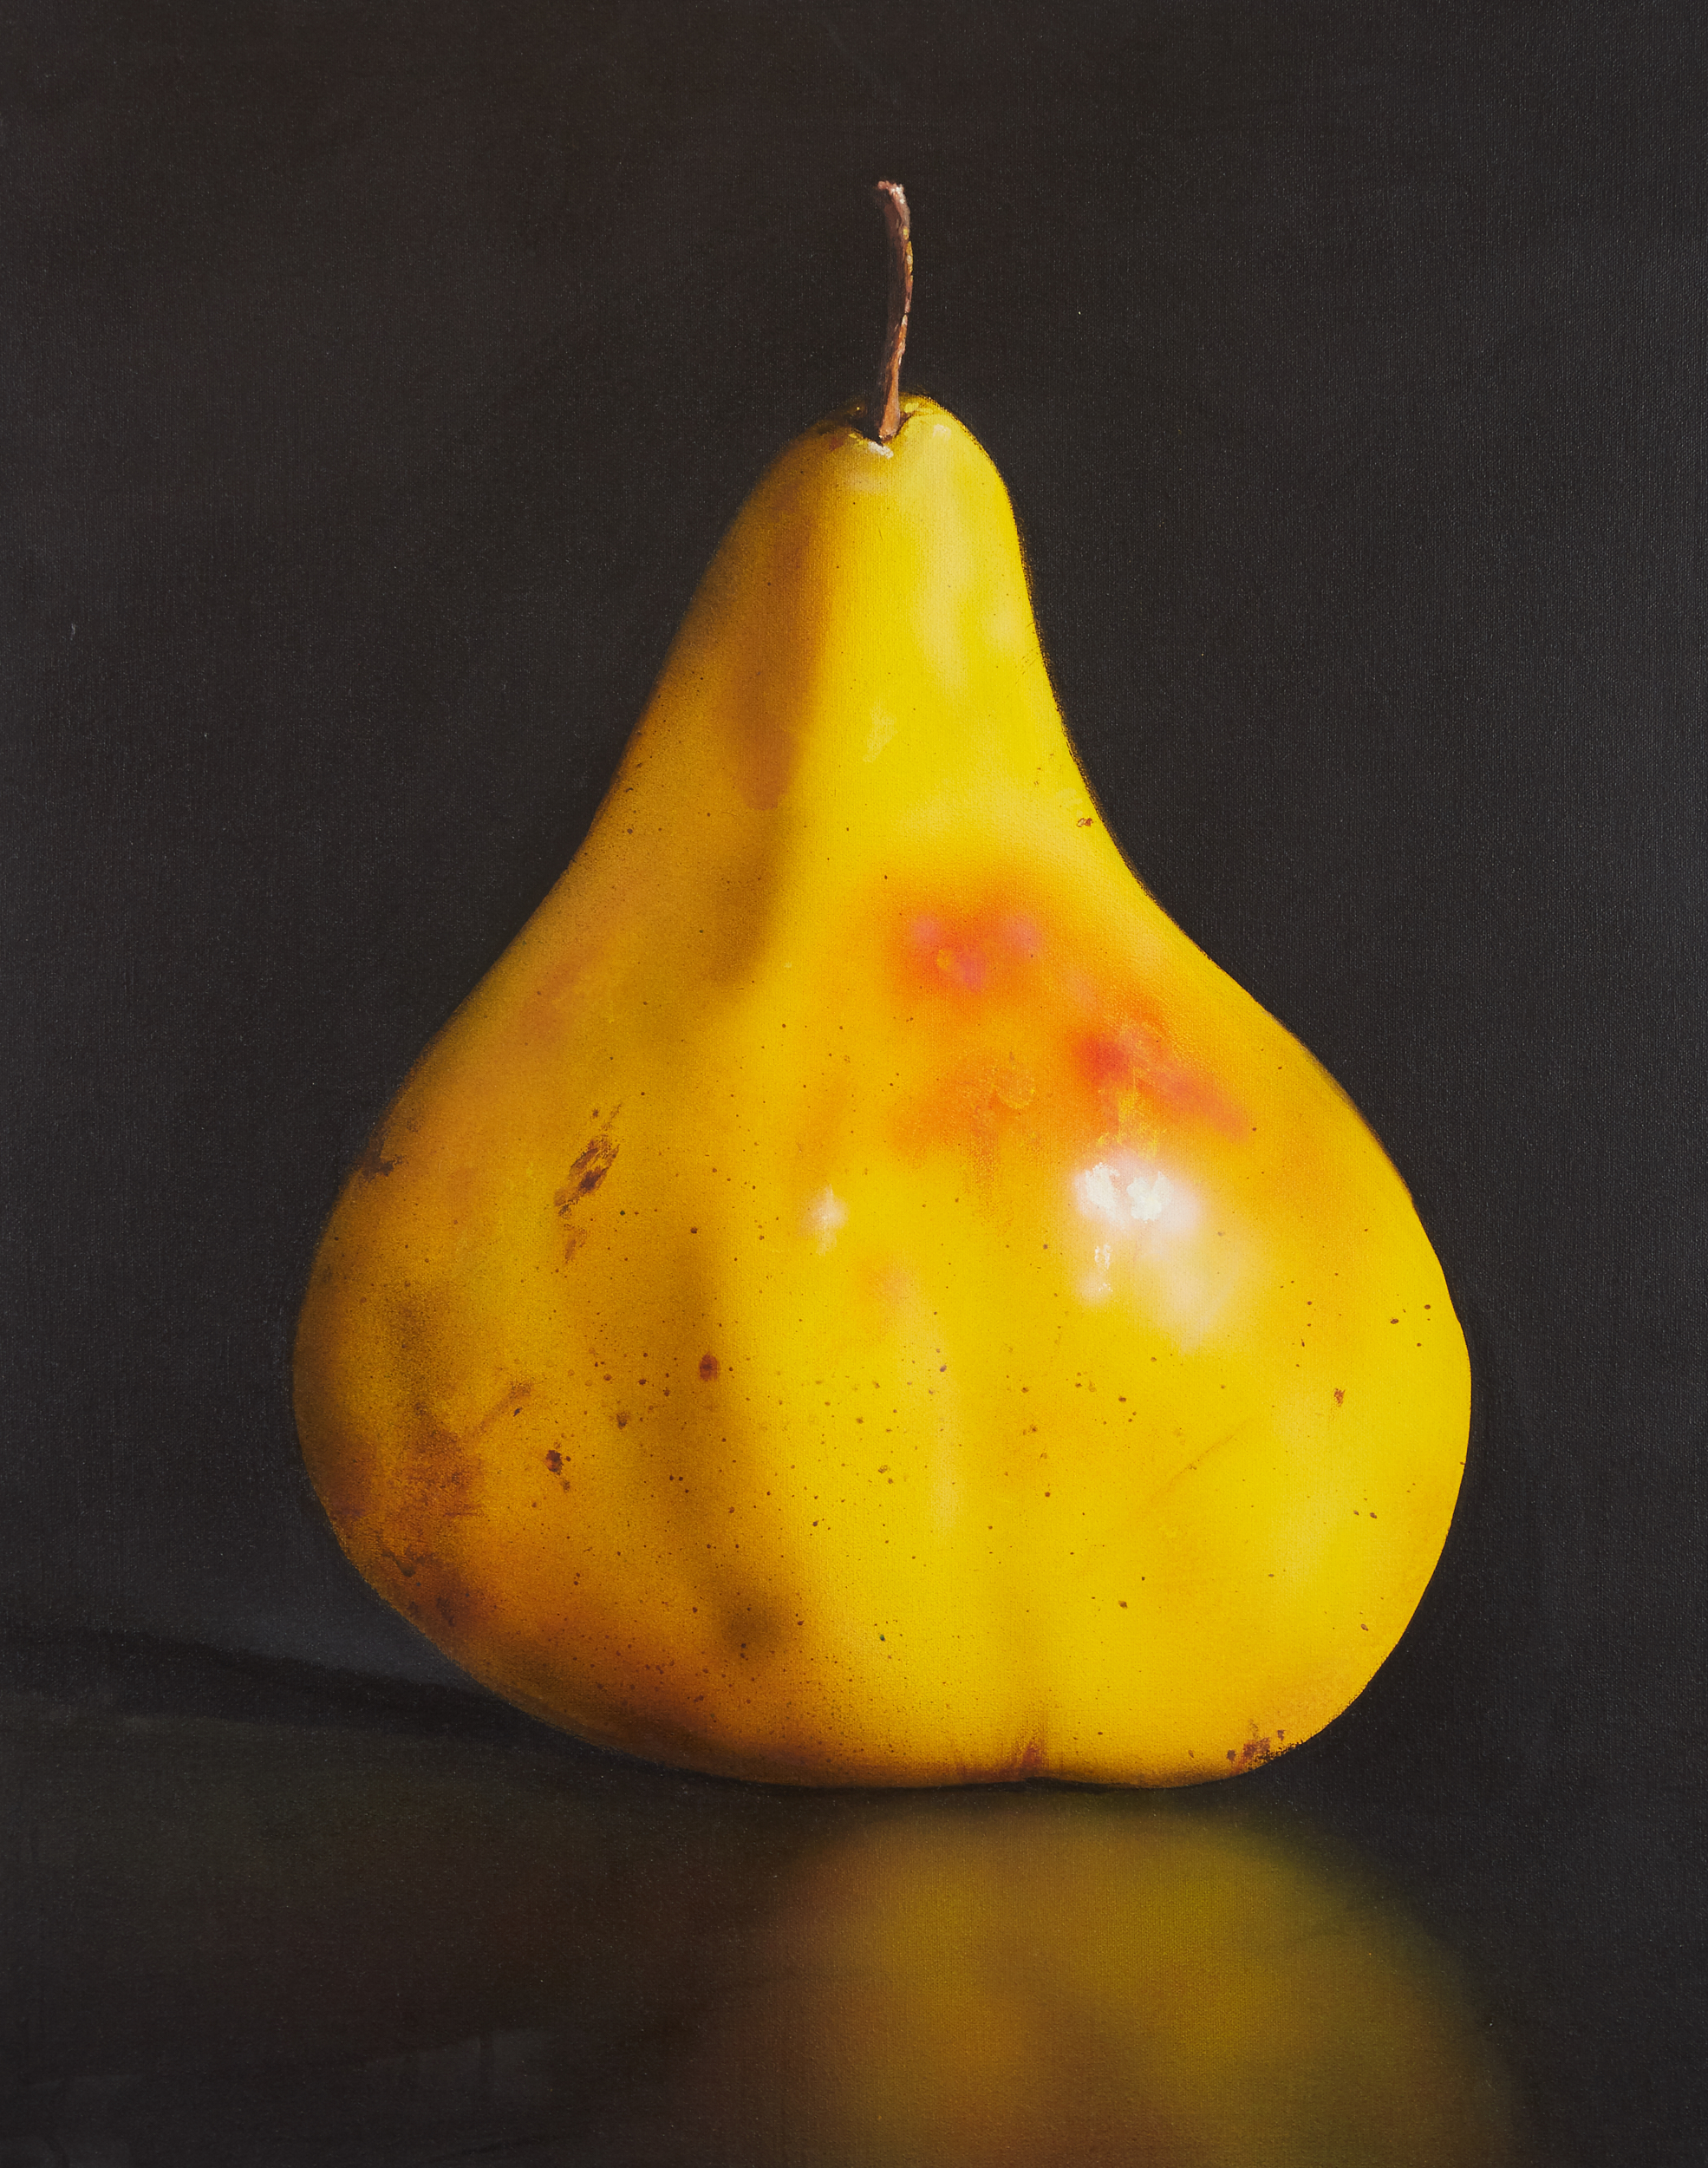 Los 30 - Tom Seghi (1942-2011). Oil on canvas depicting a yellow pear. Signed and dated '96 along the...